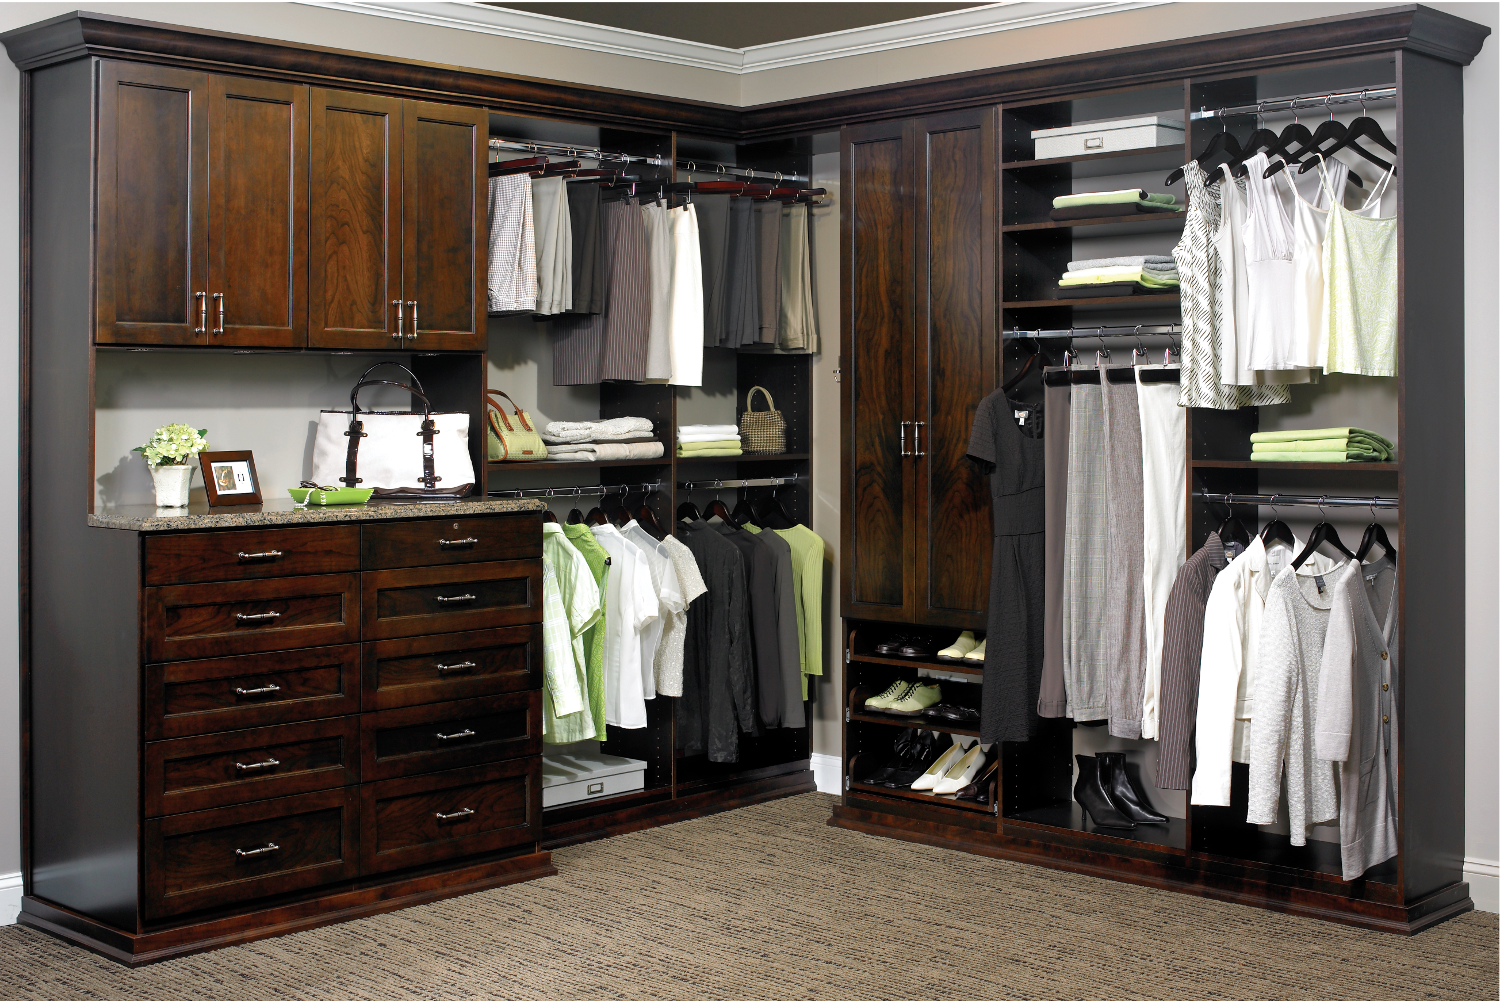 Rochester Ny Kitchen Bath Remodeler Expands With Custom Closets Line